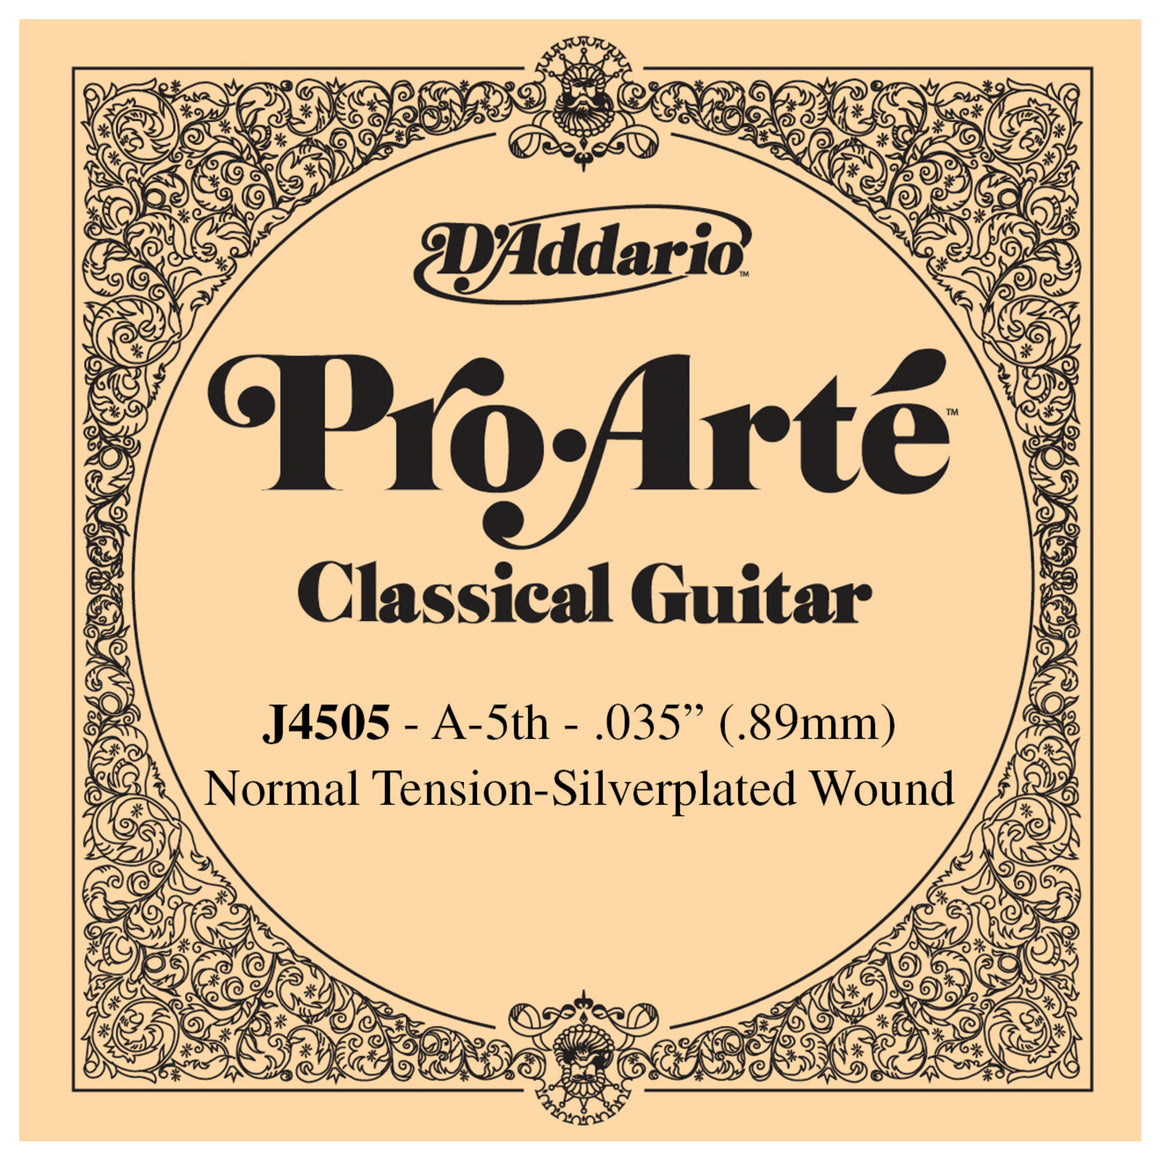 D'Addario Pro Arte 5th Silver Wound Single String .035 J4505